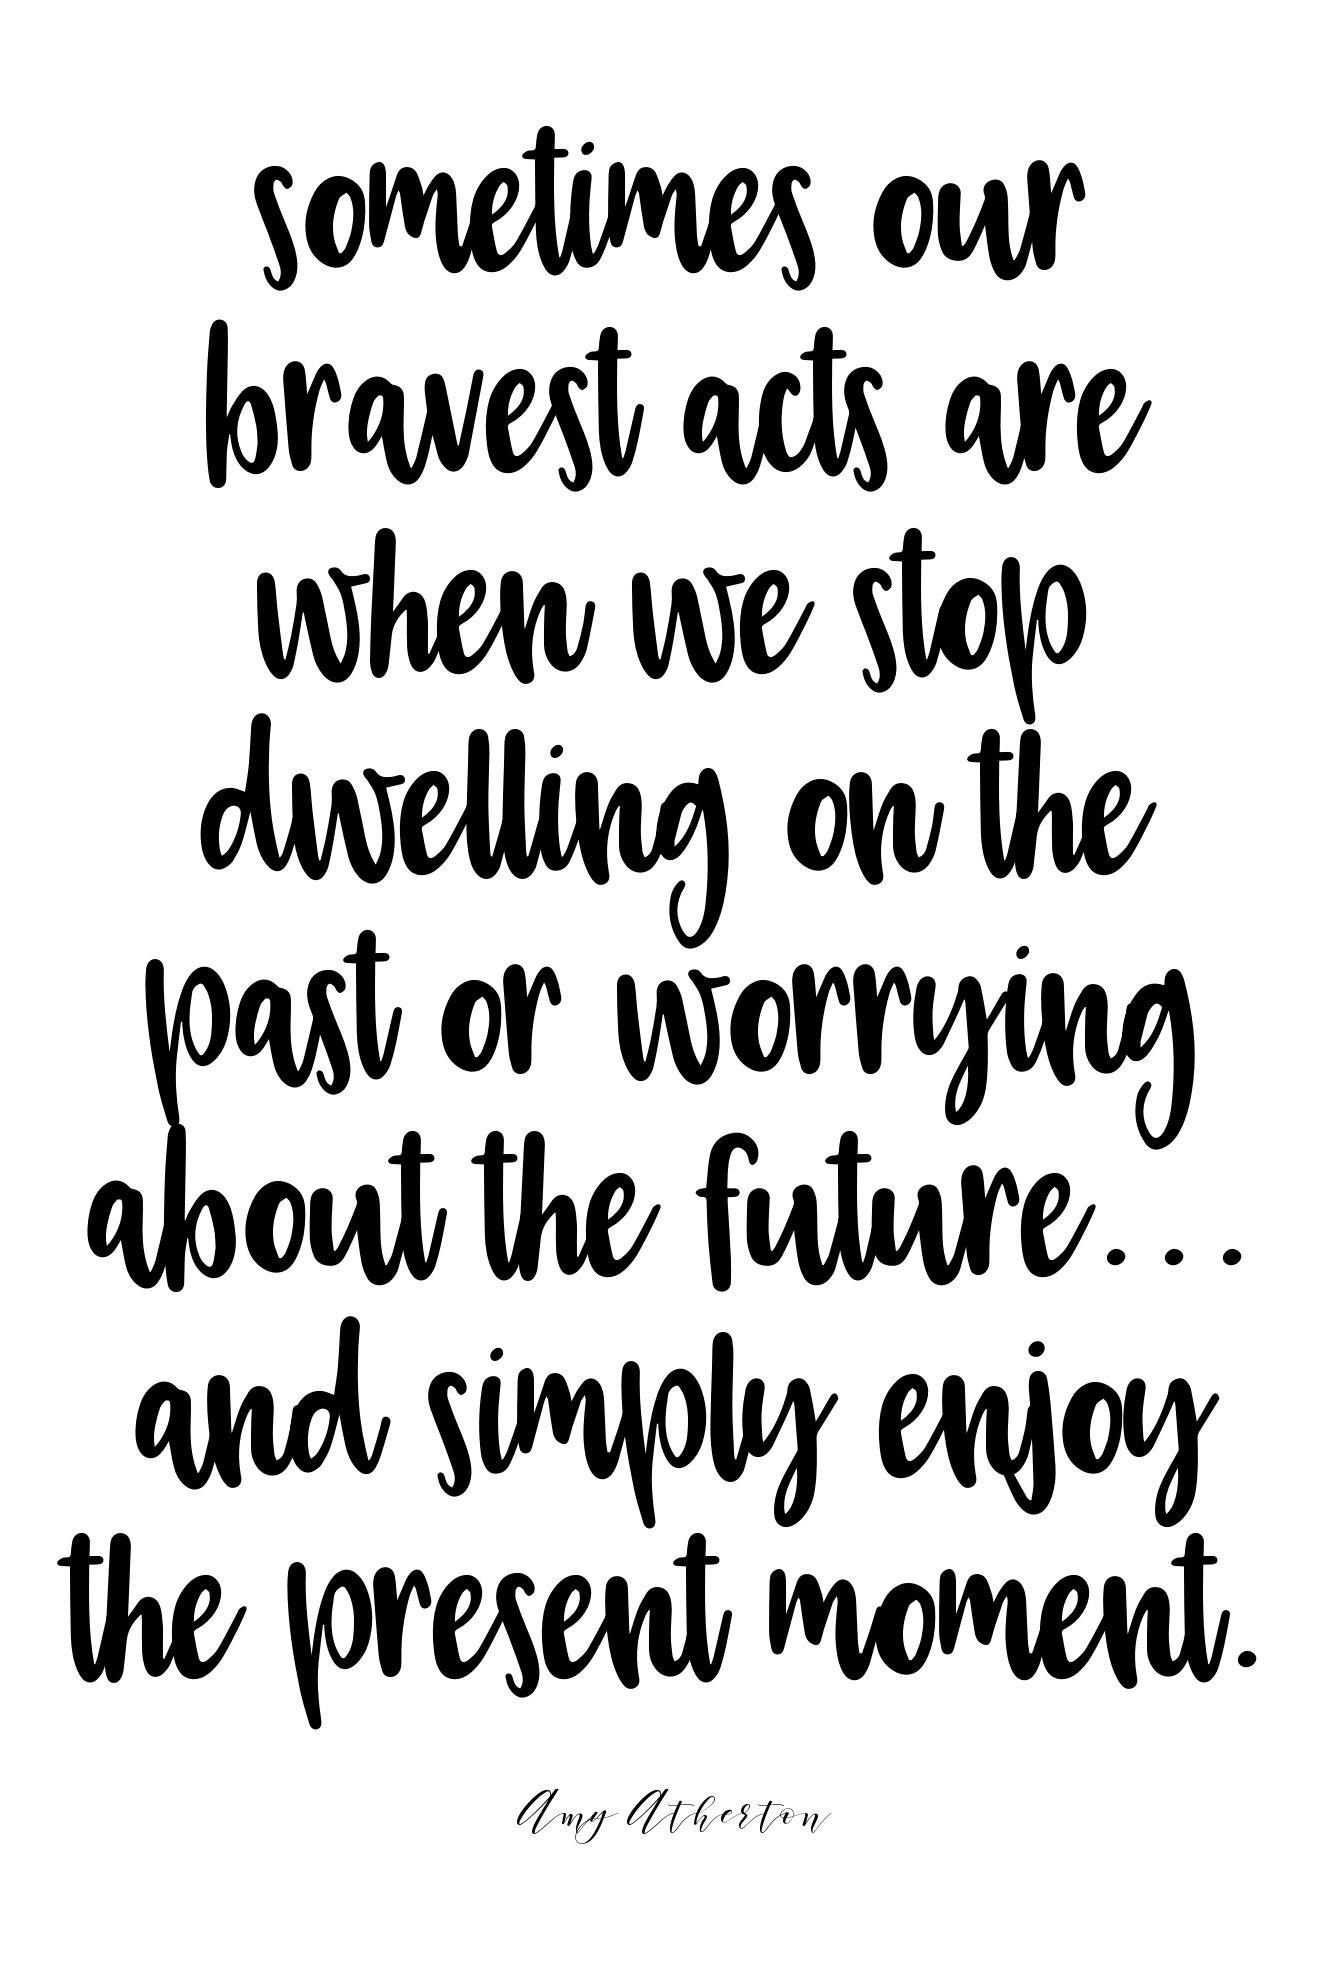 Sometimes our braves acts are when we stop dwelling on the past or worrying about the future... And simply enjoy the present moment. @amybakeshealthy